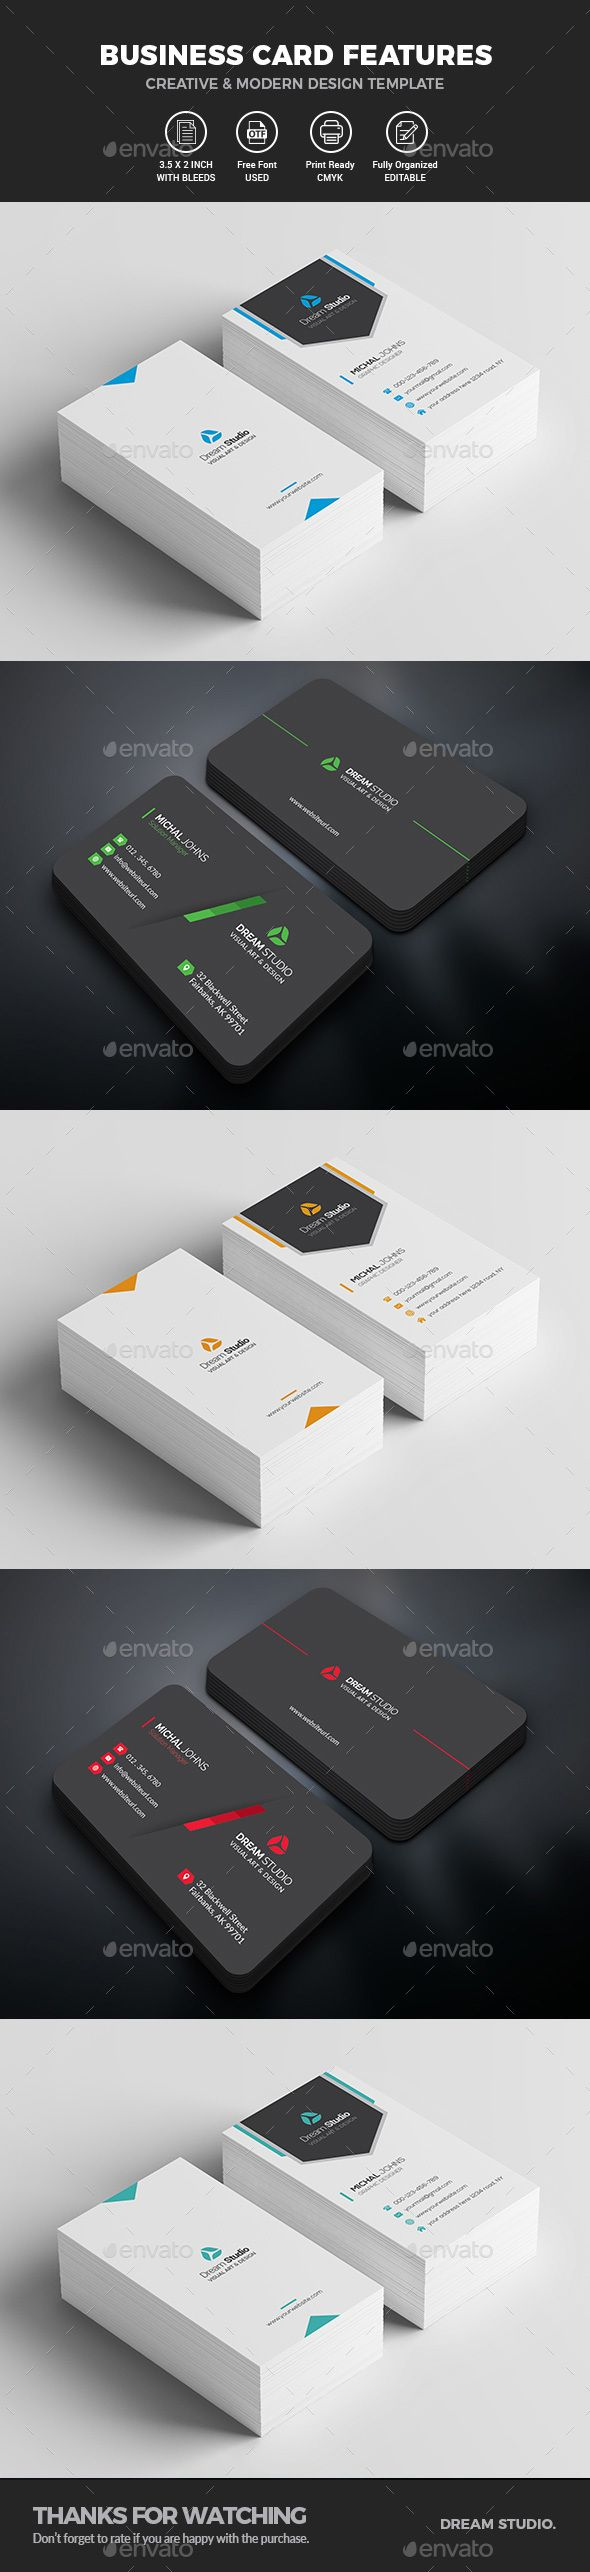 37 best business cards dream studio eg images on pinterest business card bundle 2 in 1 cheaphphosting Choice Image